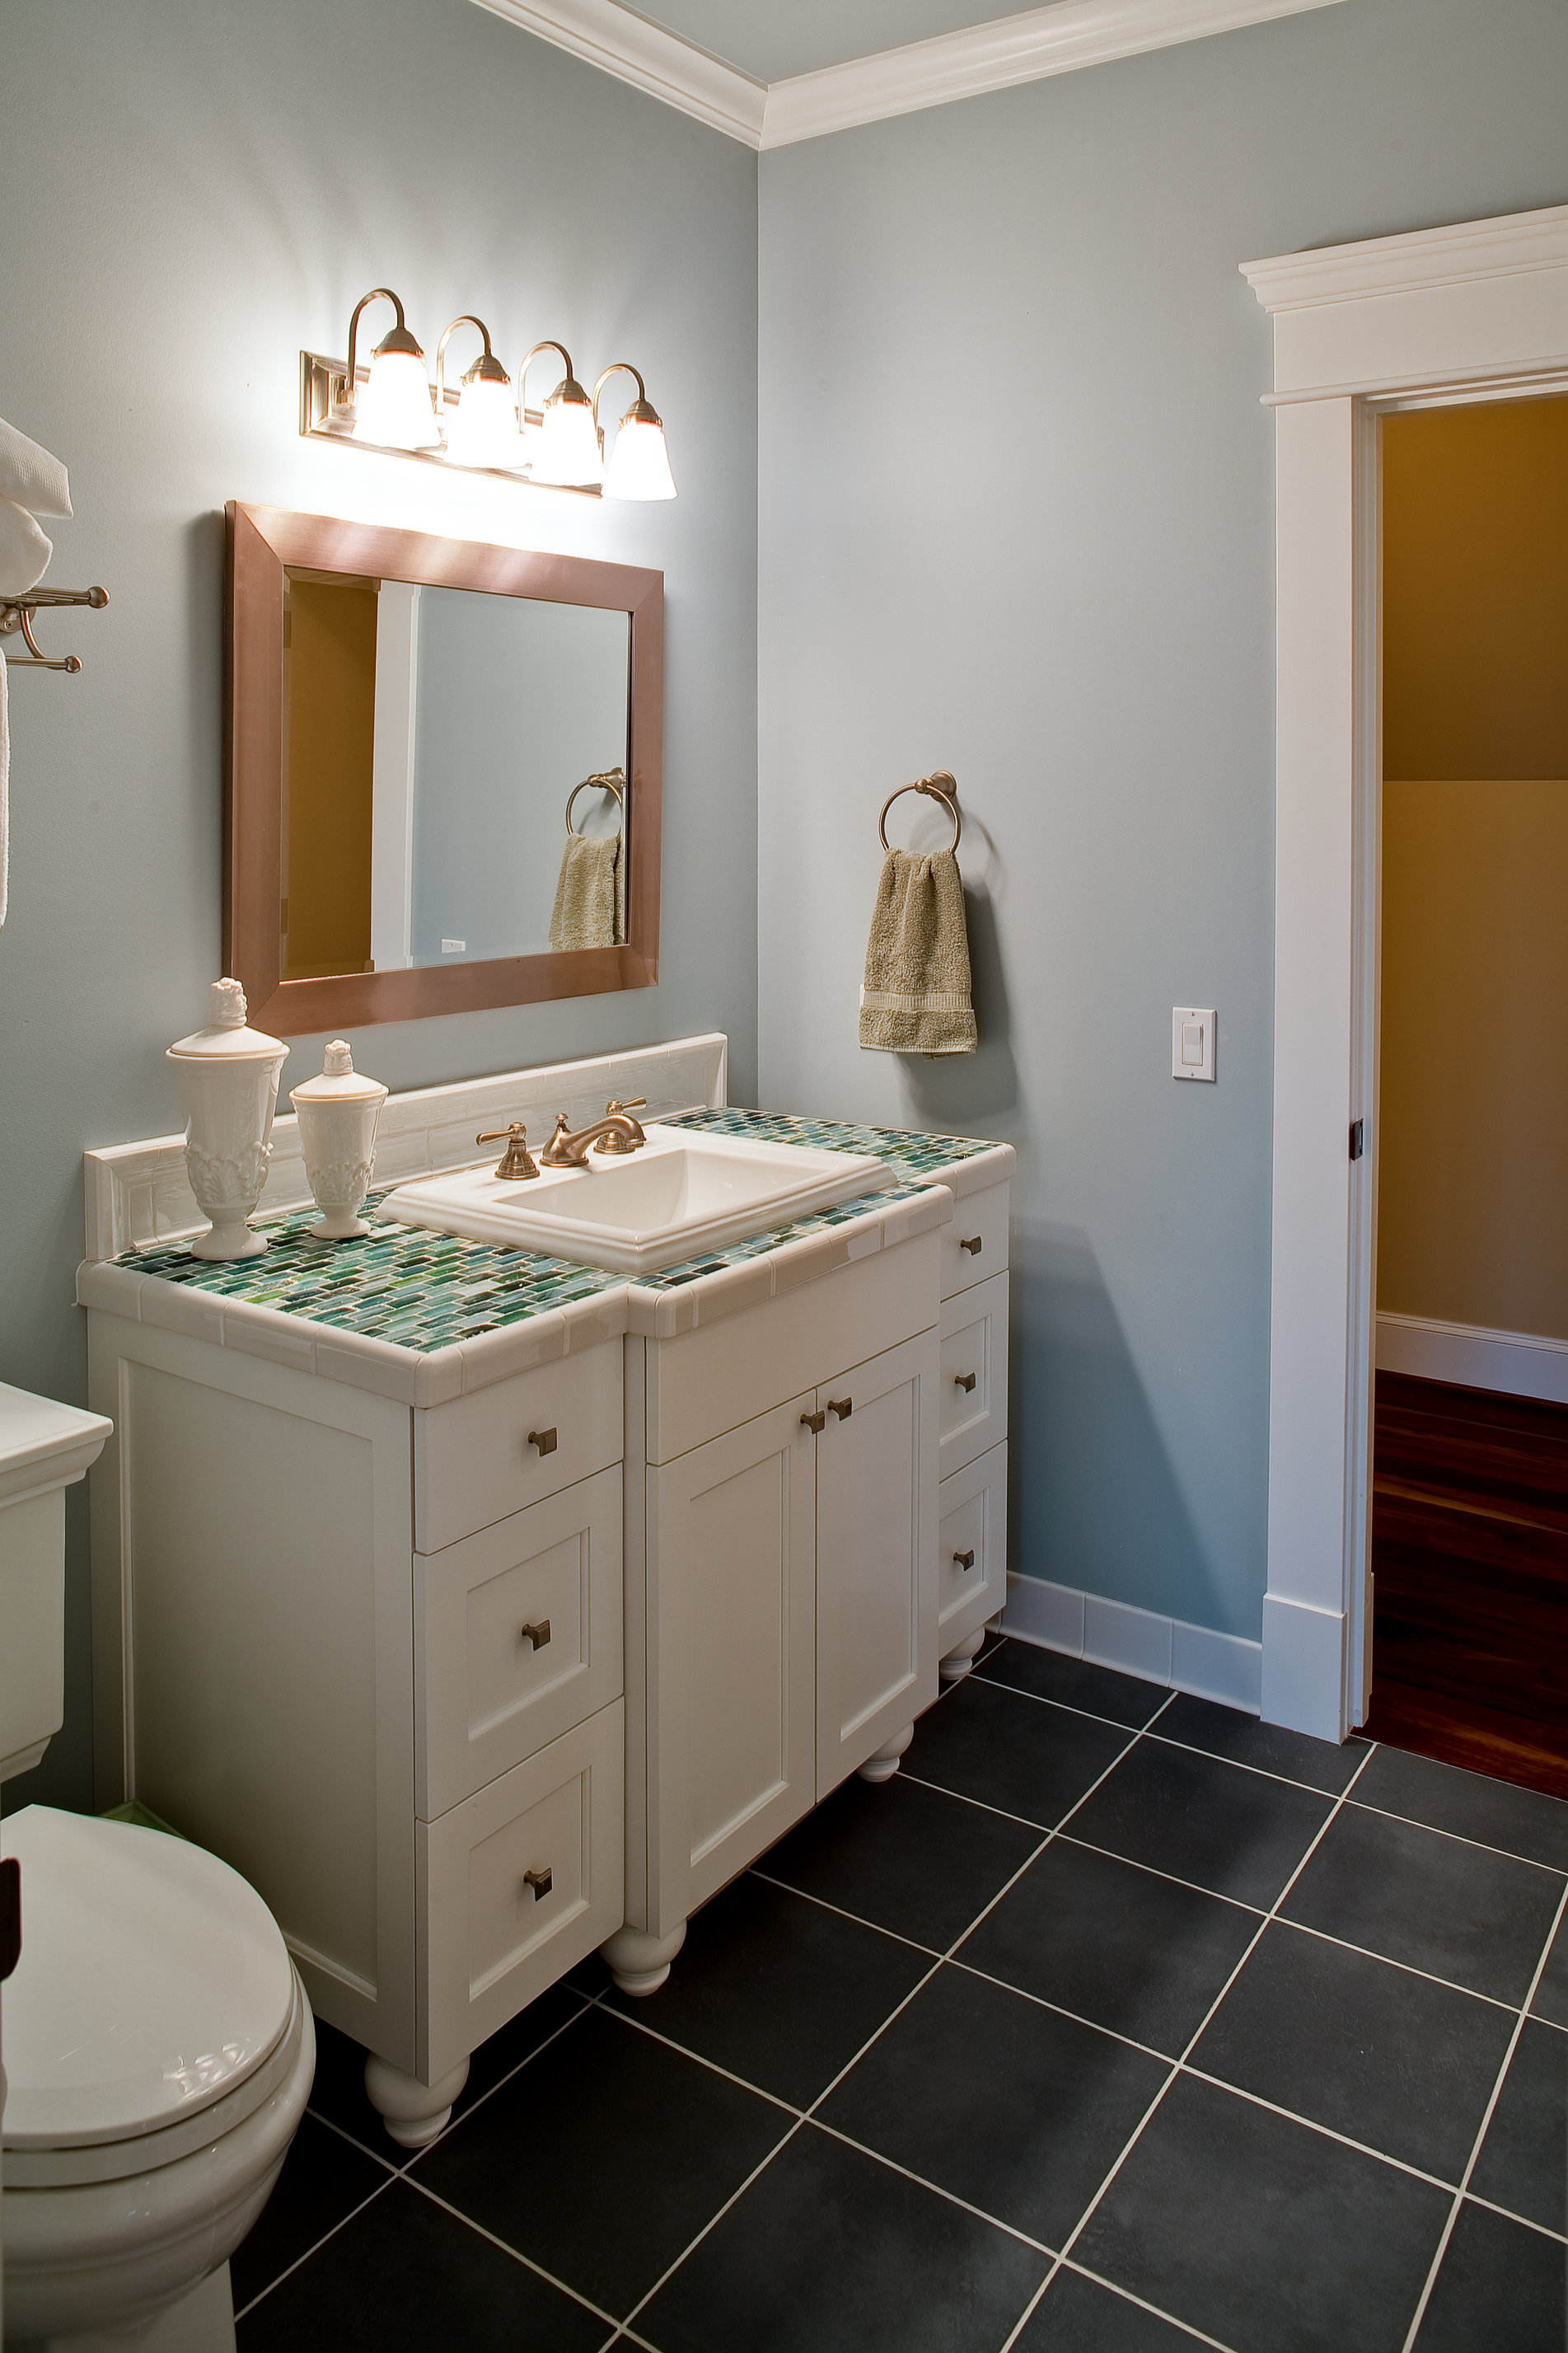 listellos your lime canada make work columbia orange how walls shine with green bathroom victoria british stall tile white vancouver shower island tiles and